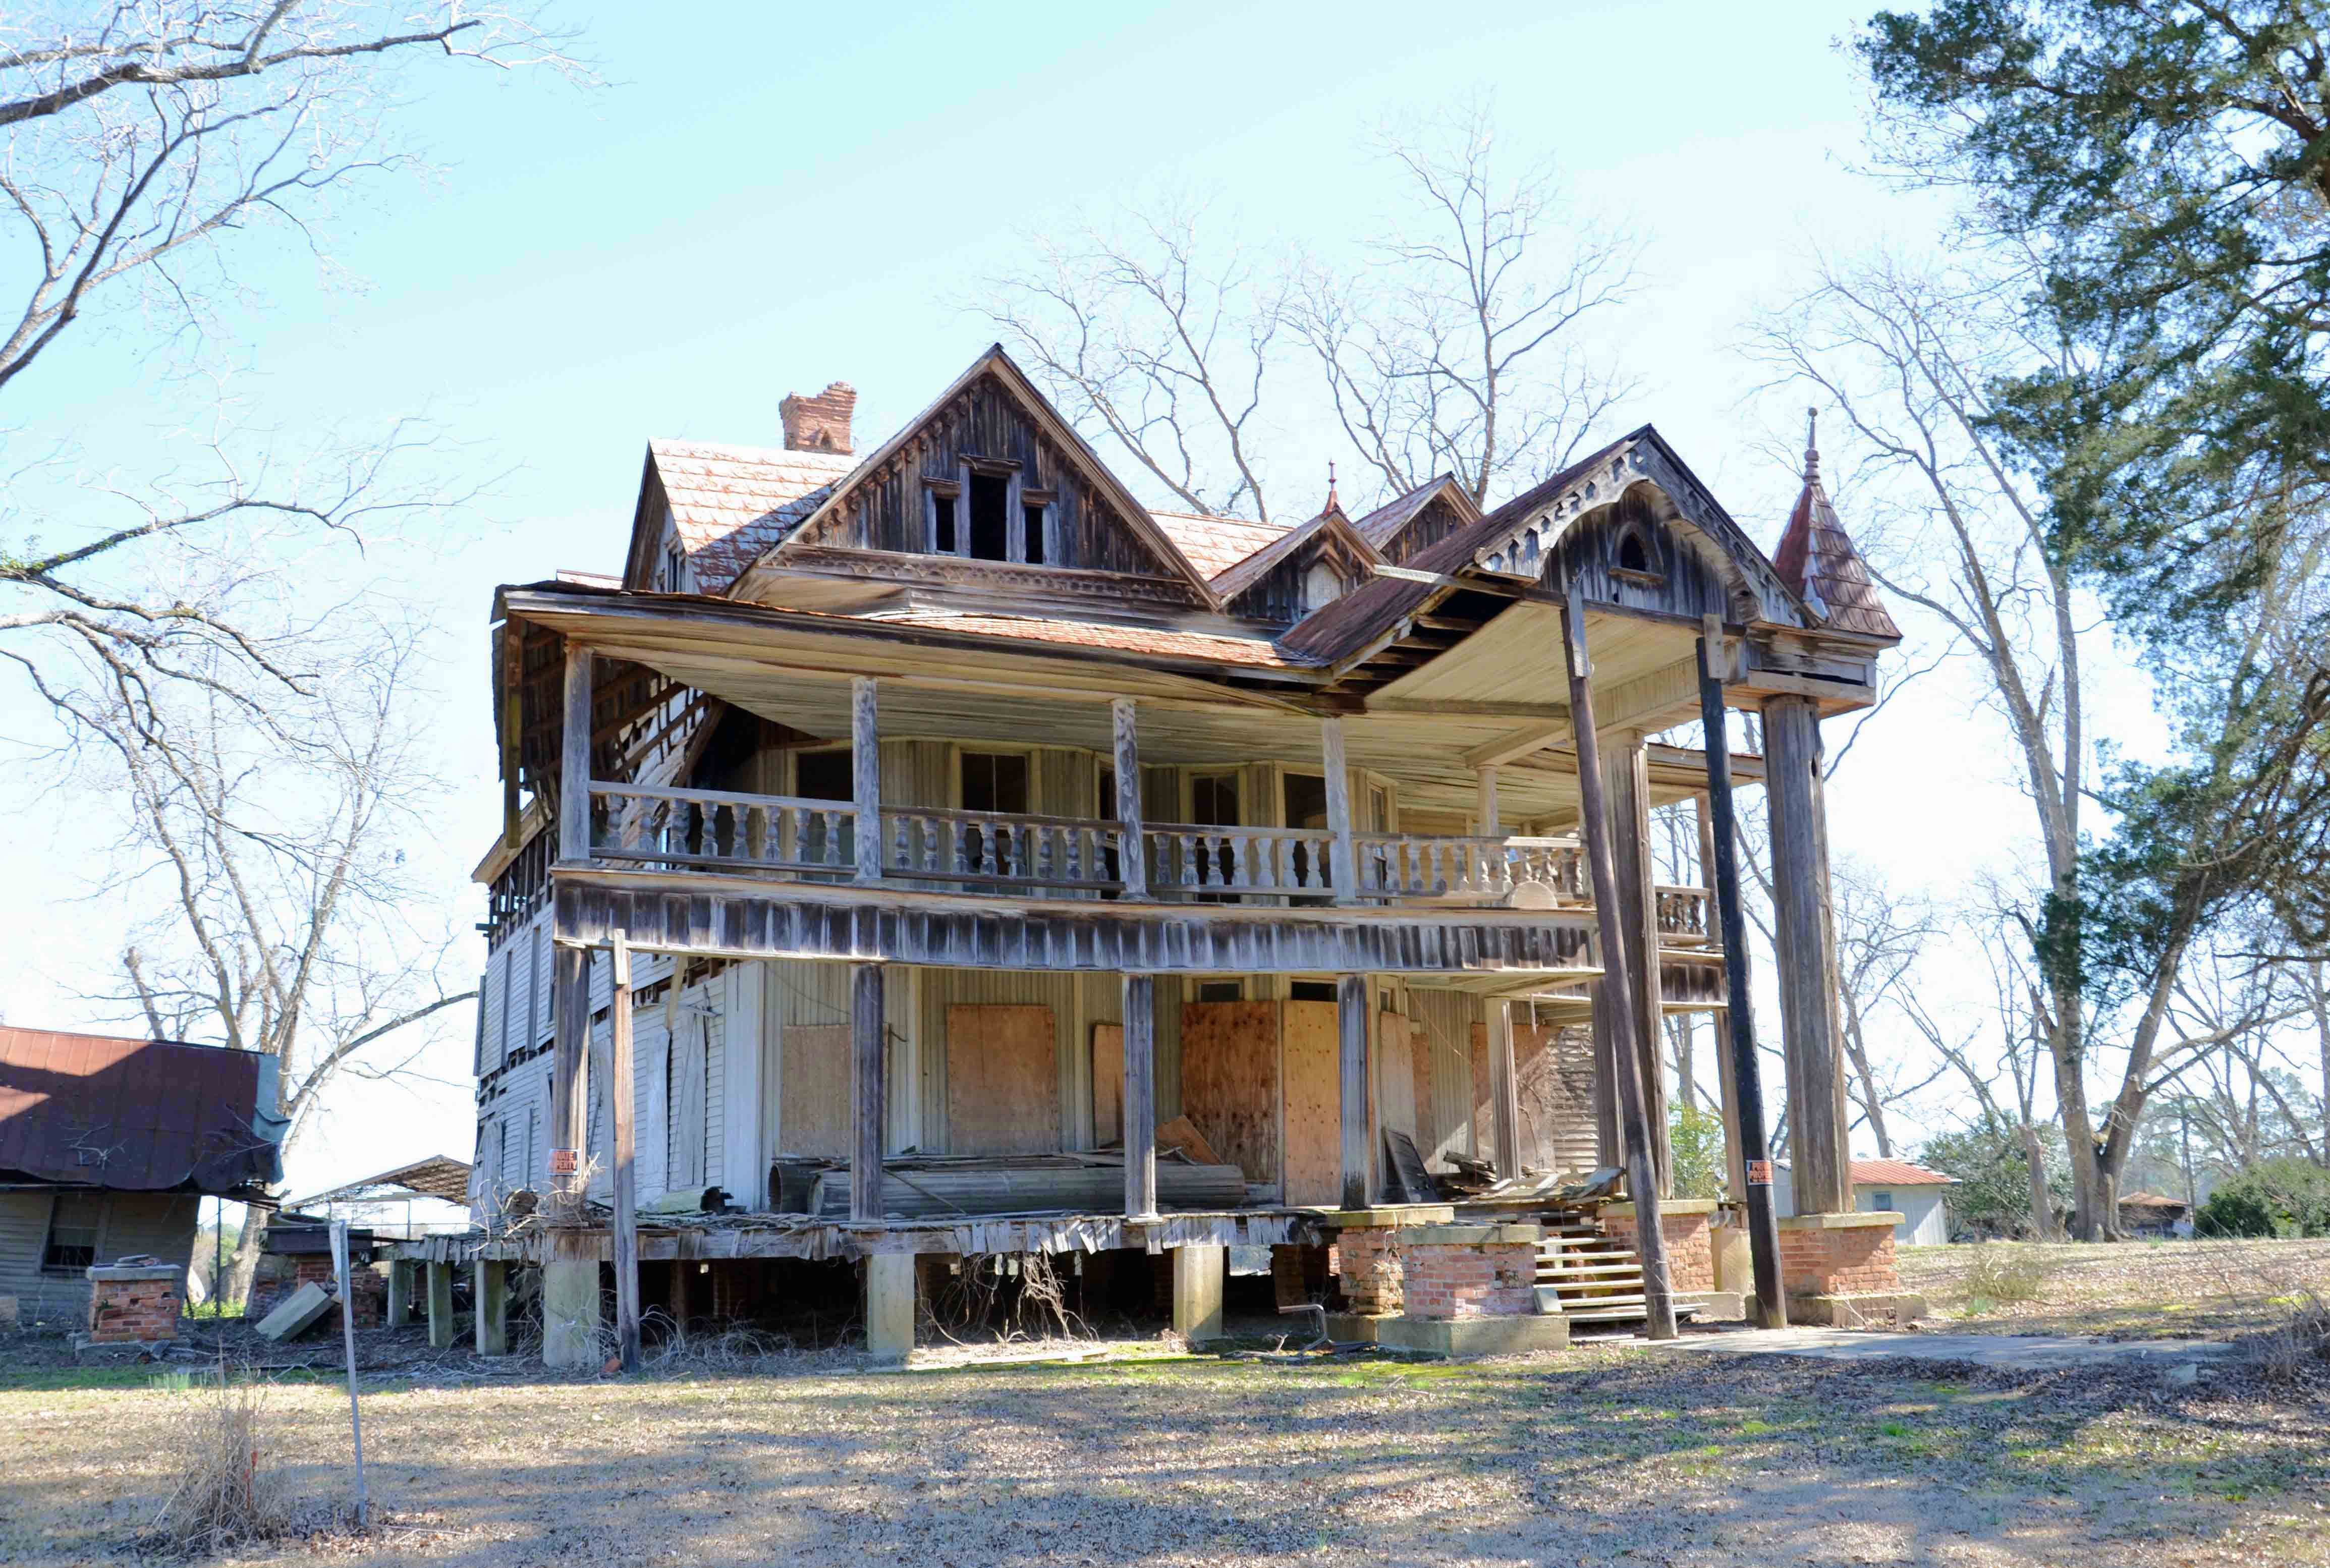 Rumor has it that two old women died in the house and went unnoticed.  Allegedly, a blue light can be seen in the window at night and those who have entered the house have reported seeing the women in their rocking chairs.